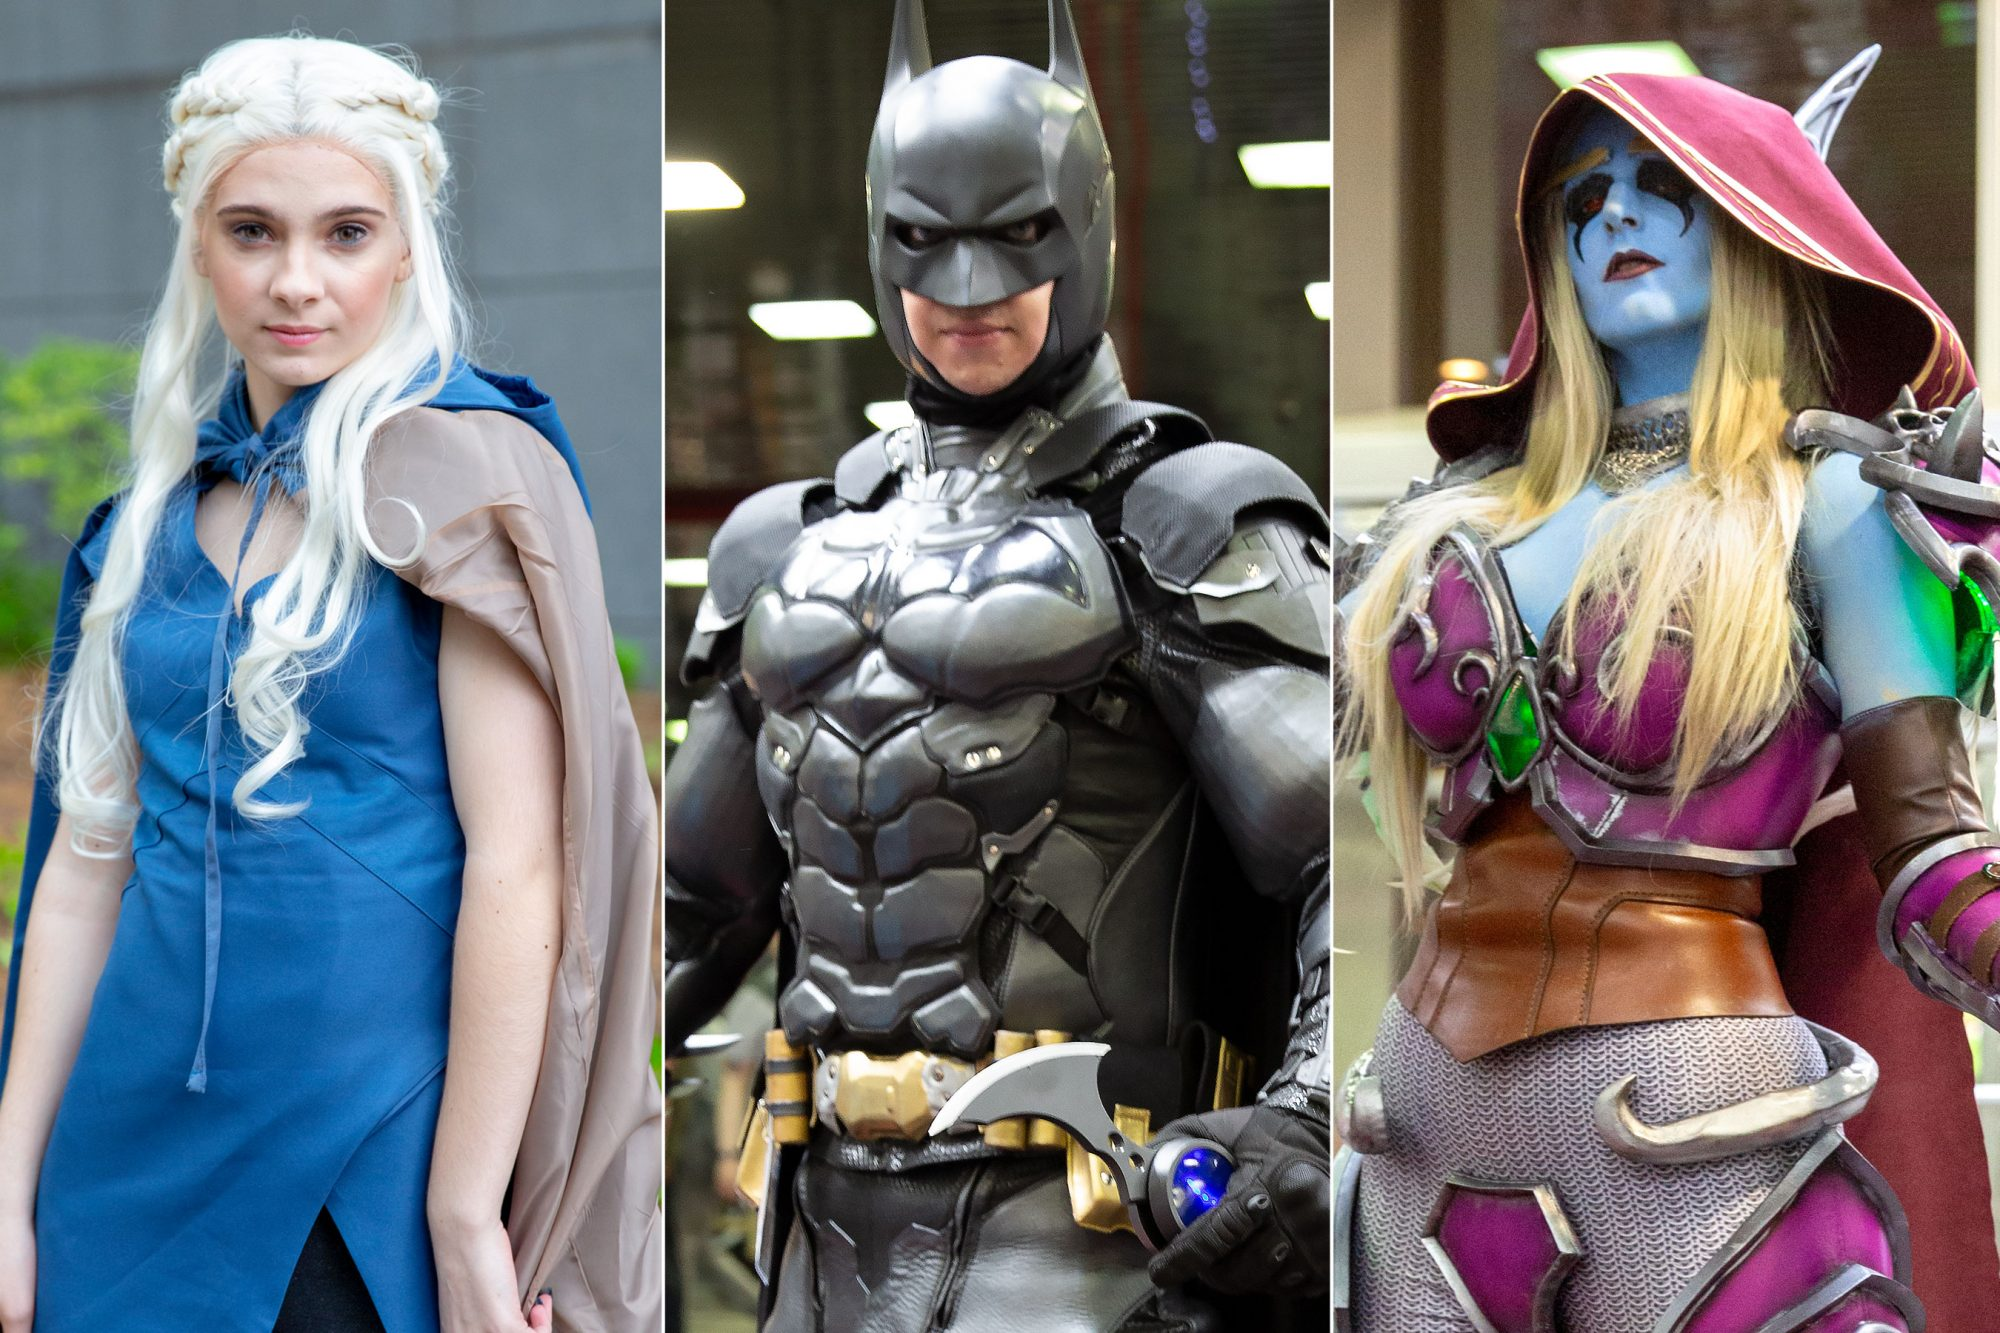 Anime Central 2019 cosplayers photographed on May 18th and 19th in Chicago, IL by Chris Cosgrove for Entertainment Weekly. -- Pictured: Daenerys Targaryen from Game of Thrones cosplayer Batman cosplayer Sylvanas from World of Warcraft cosplayer